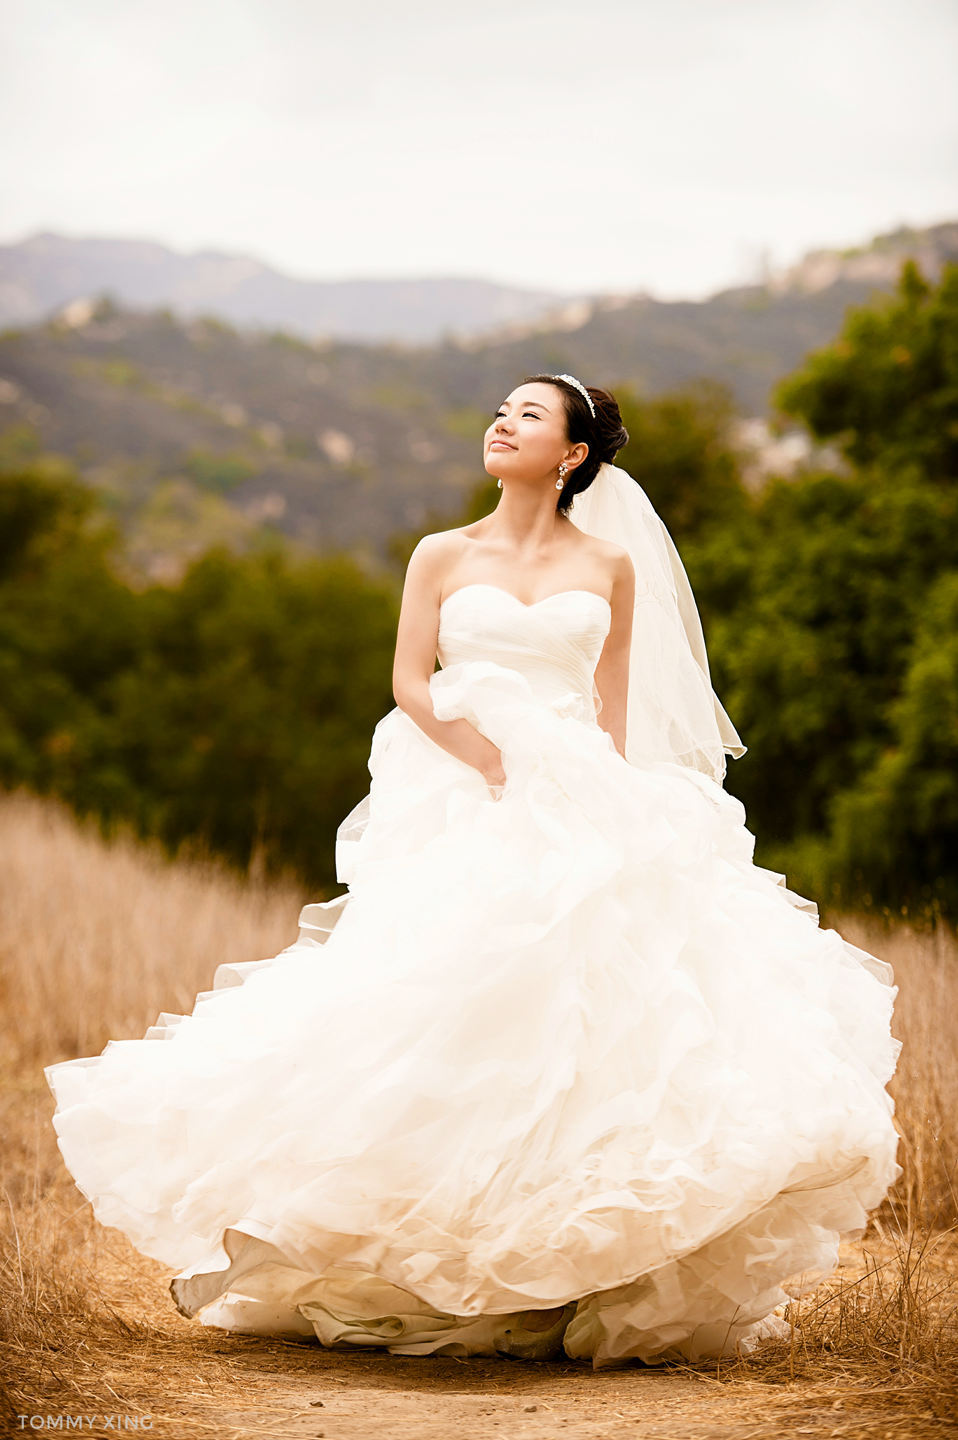 Los Angeles Wedding 洛杉矶婚纱照 Tommy Xing Photography 05.jpg